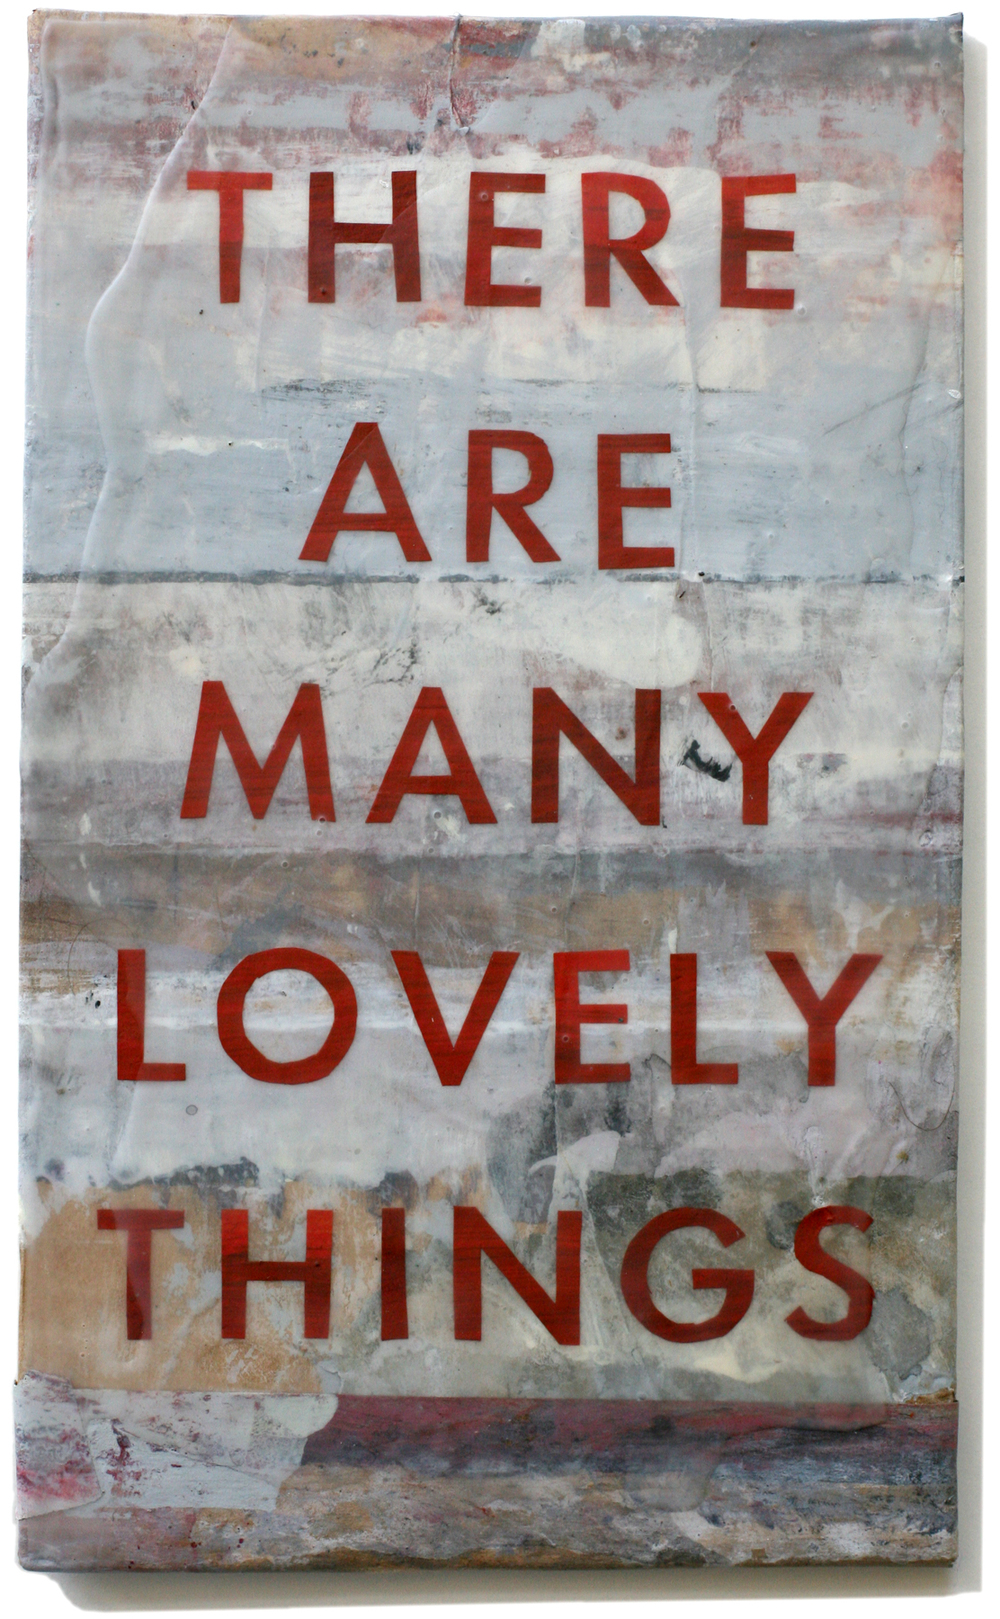 "Lovely Things 32, 10"" x 6"", 2008-2010 (private collection)"